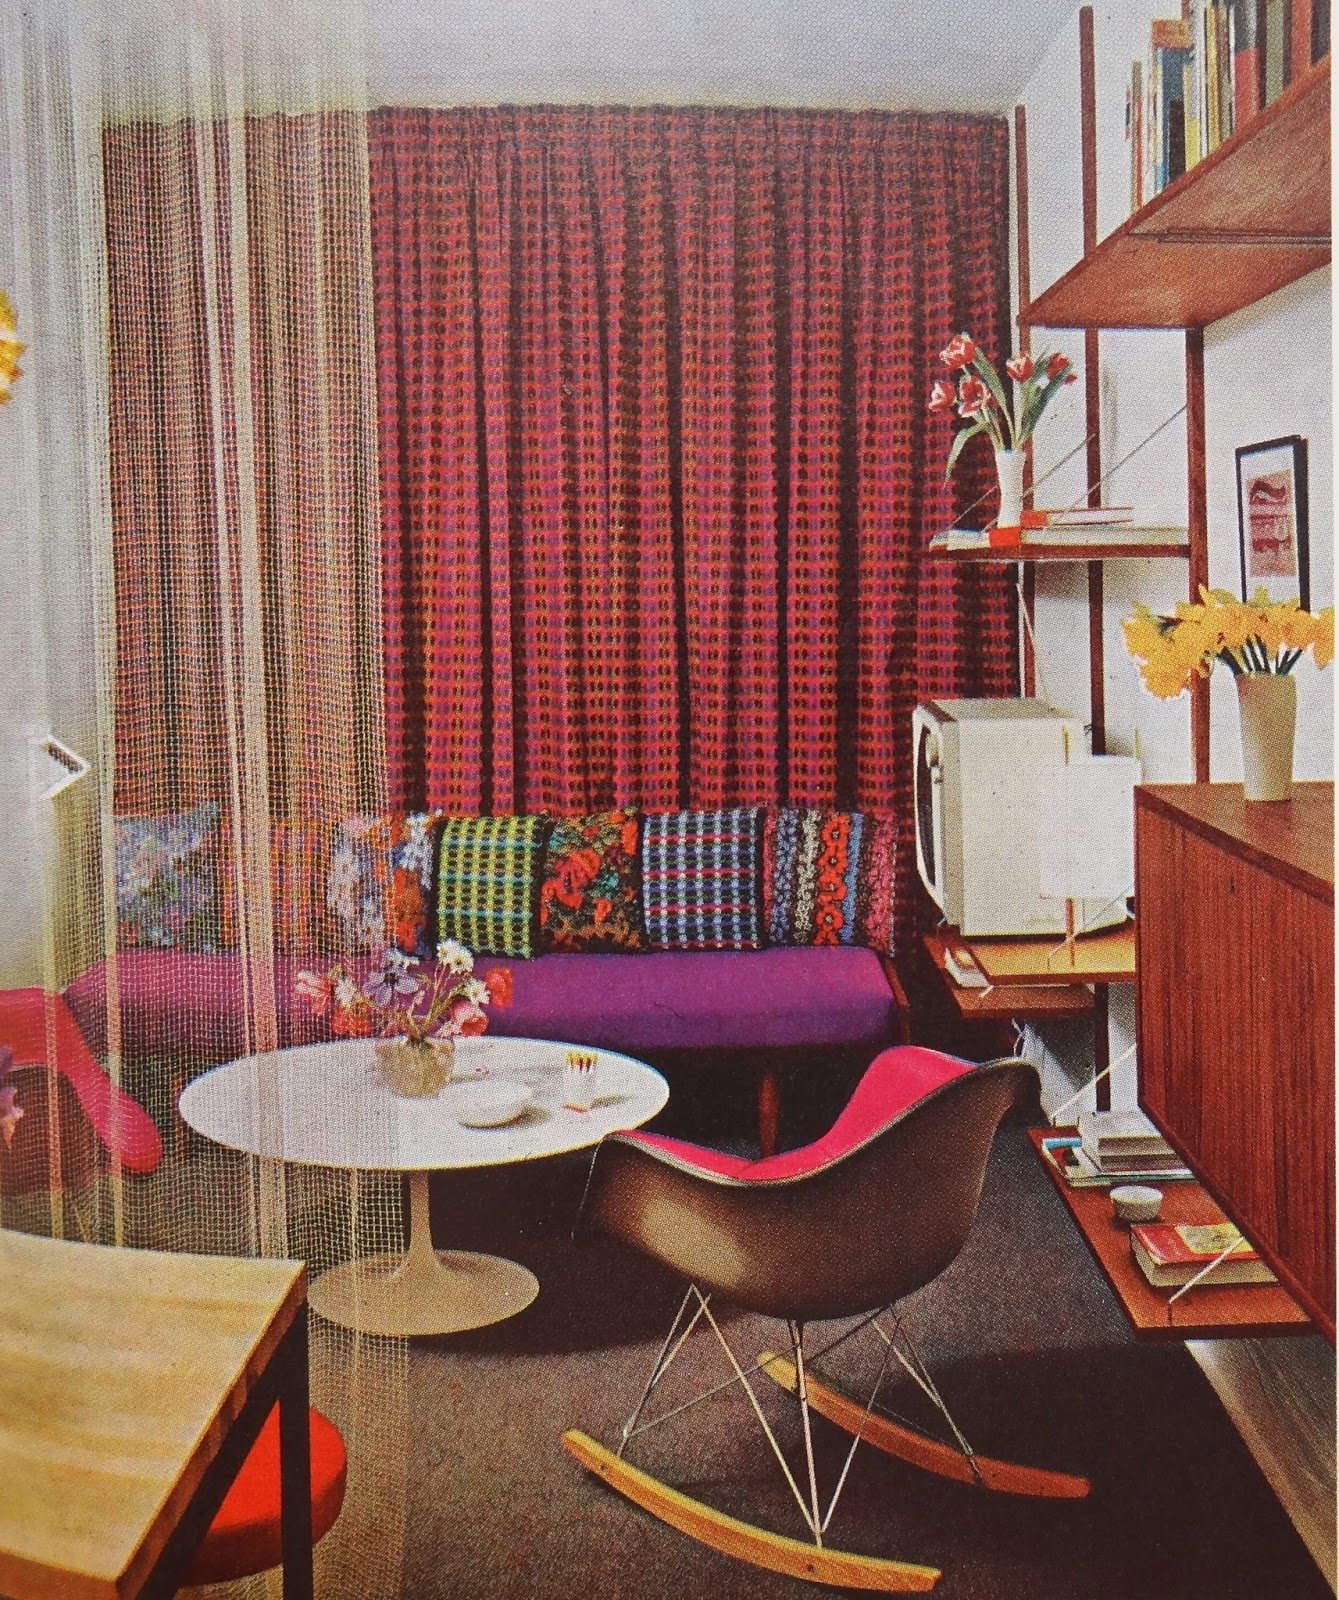 70 Living Room Decorating Ideas For Every Taste: GYPSY YAYA: Lovin' 1970s Design- House & Garden's Complete